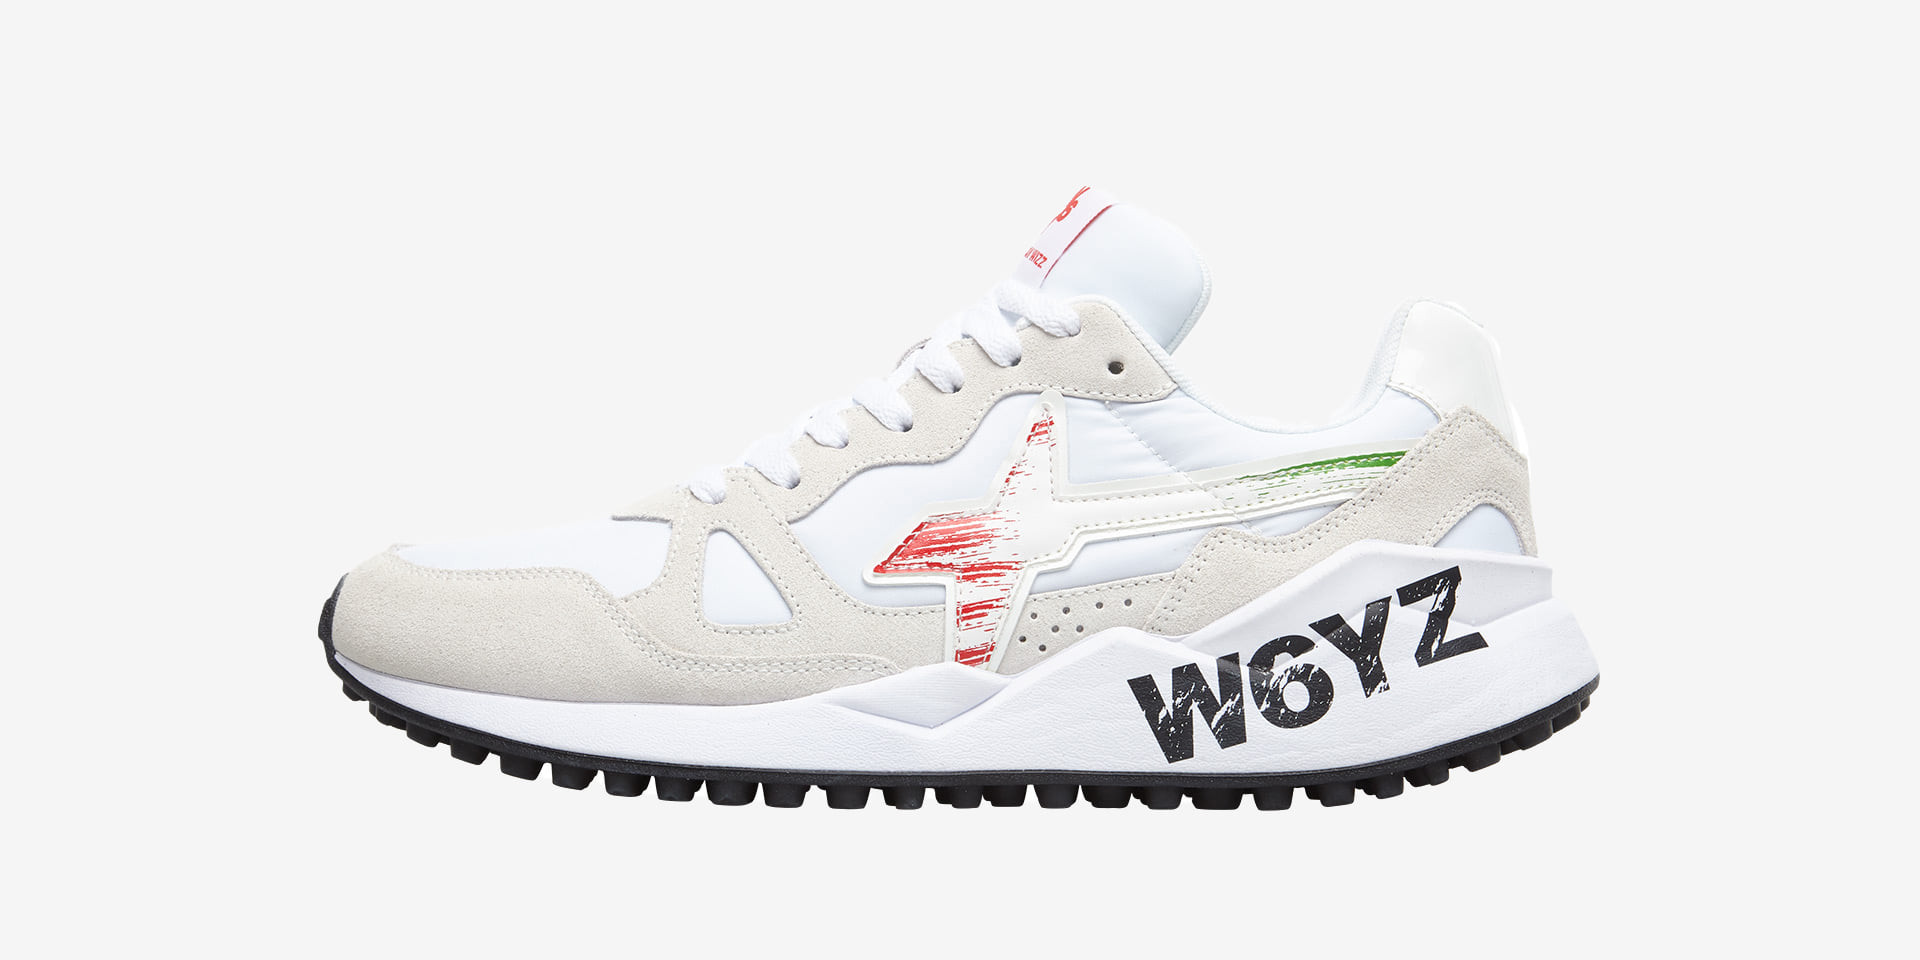 FLAG.I. - Sneakers in leather and nylon - White